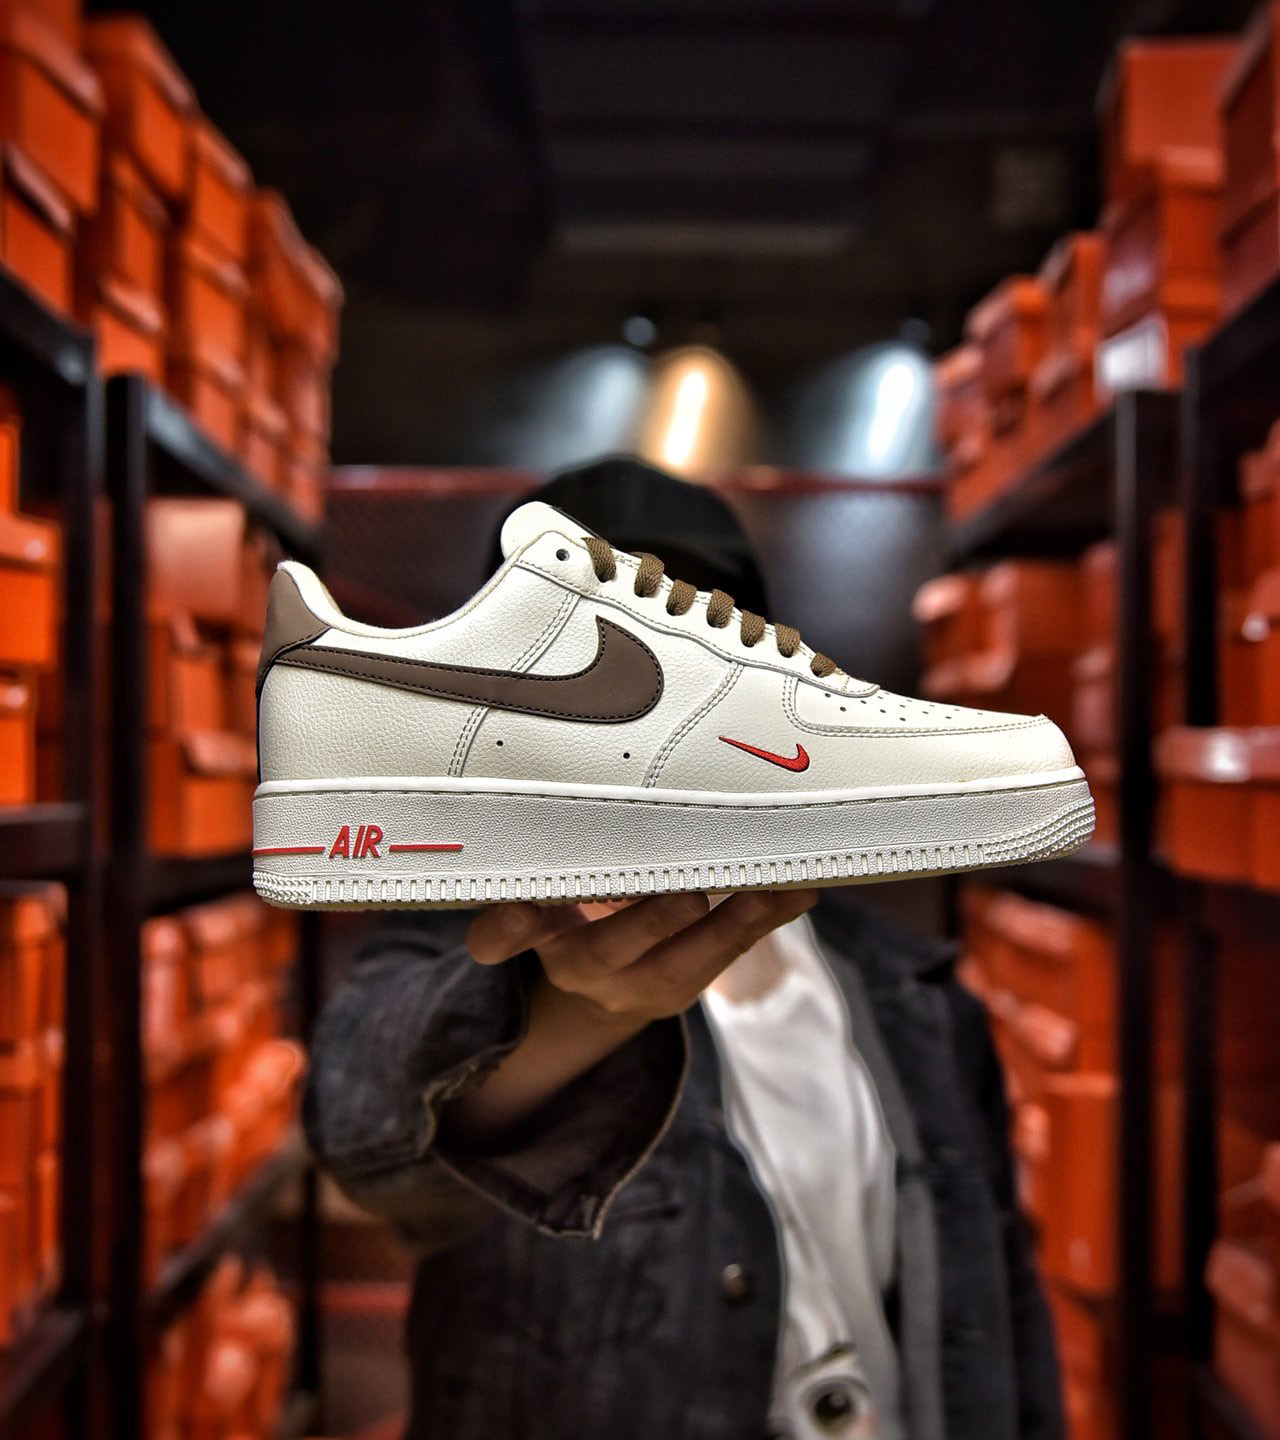 Nike Air Force 1 Low Id Mens Skateboarding Shoes Womens Skateboarding Shoes Lovers Skateboarding Shoes Casual Skateboarding Shoes Sports Skateboarding Shoes.